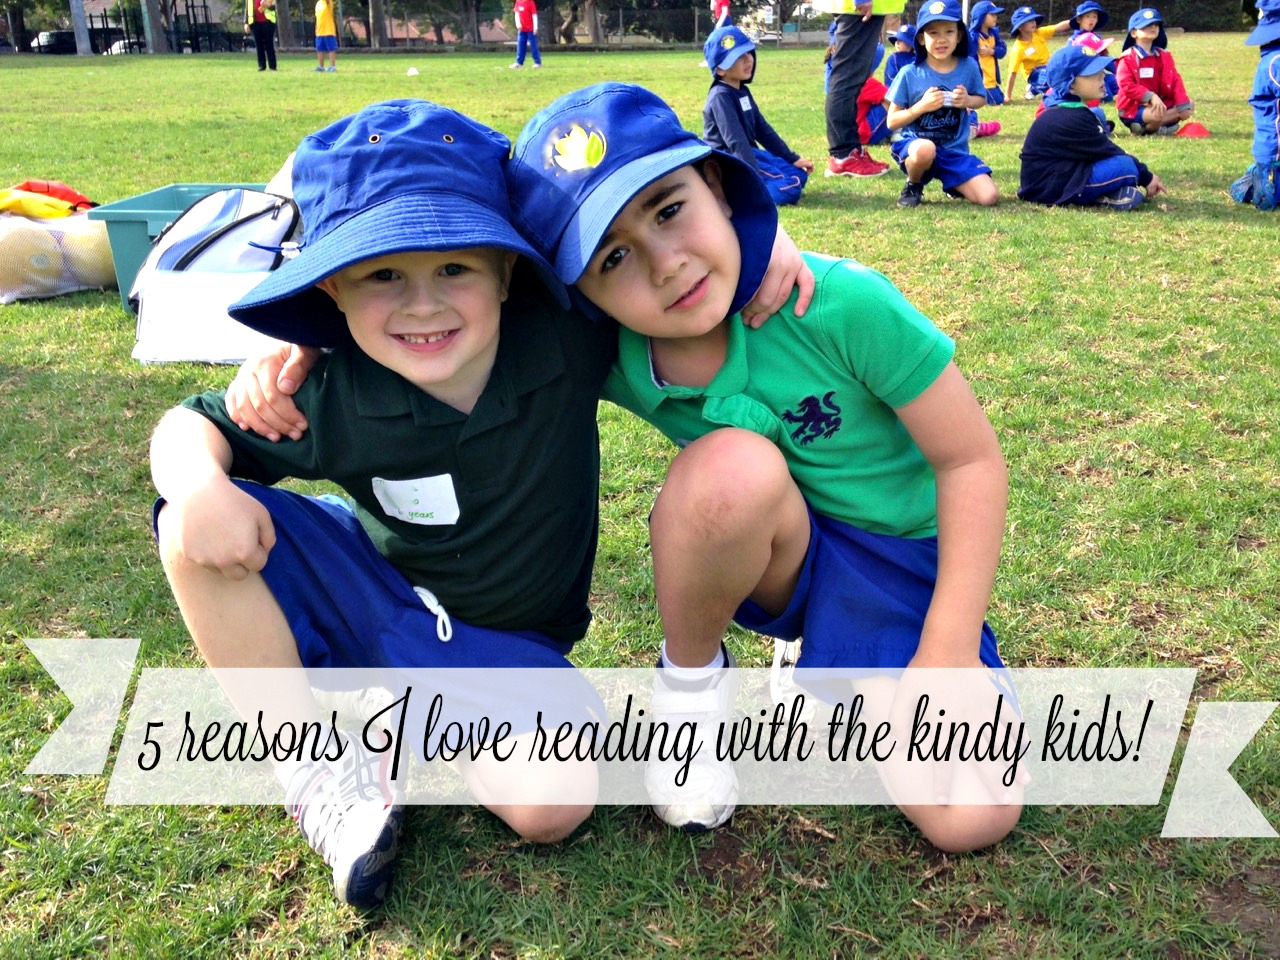 5 reasons I love to read with the kindy kids